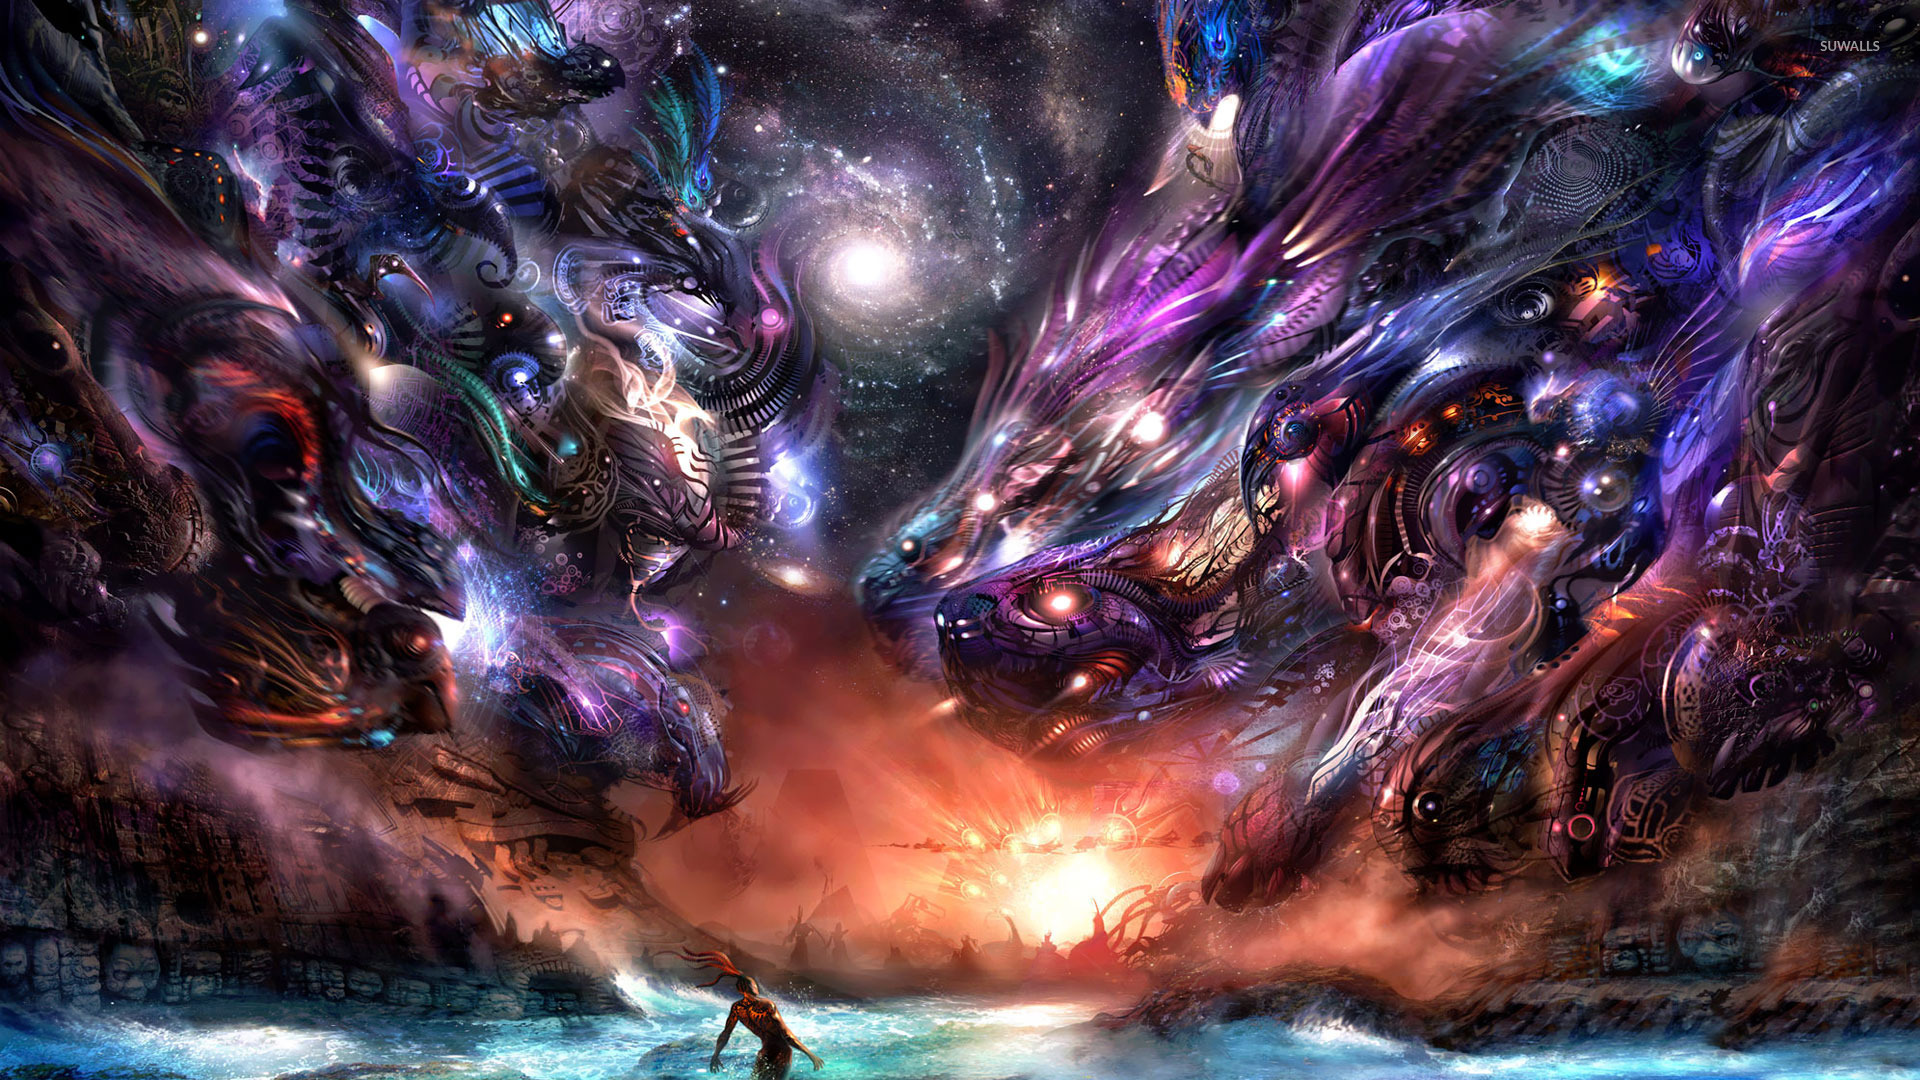 Alien dragons attacking wallpaper - Fantasy wallpapers ...